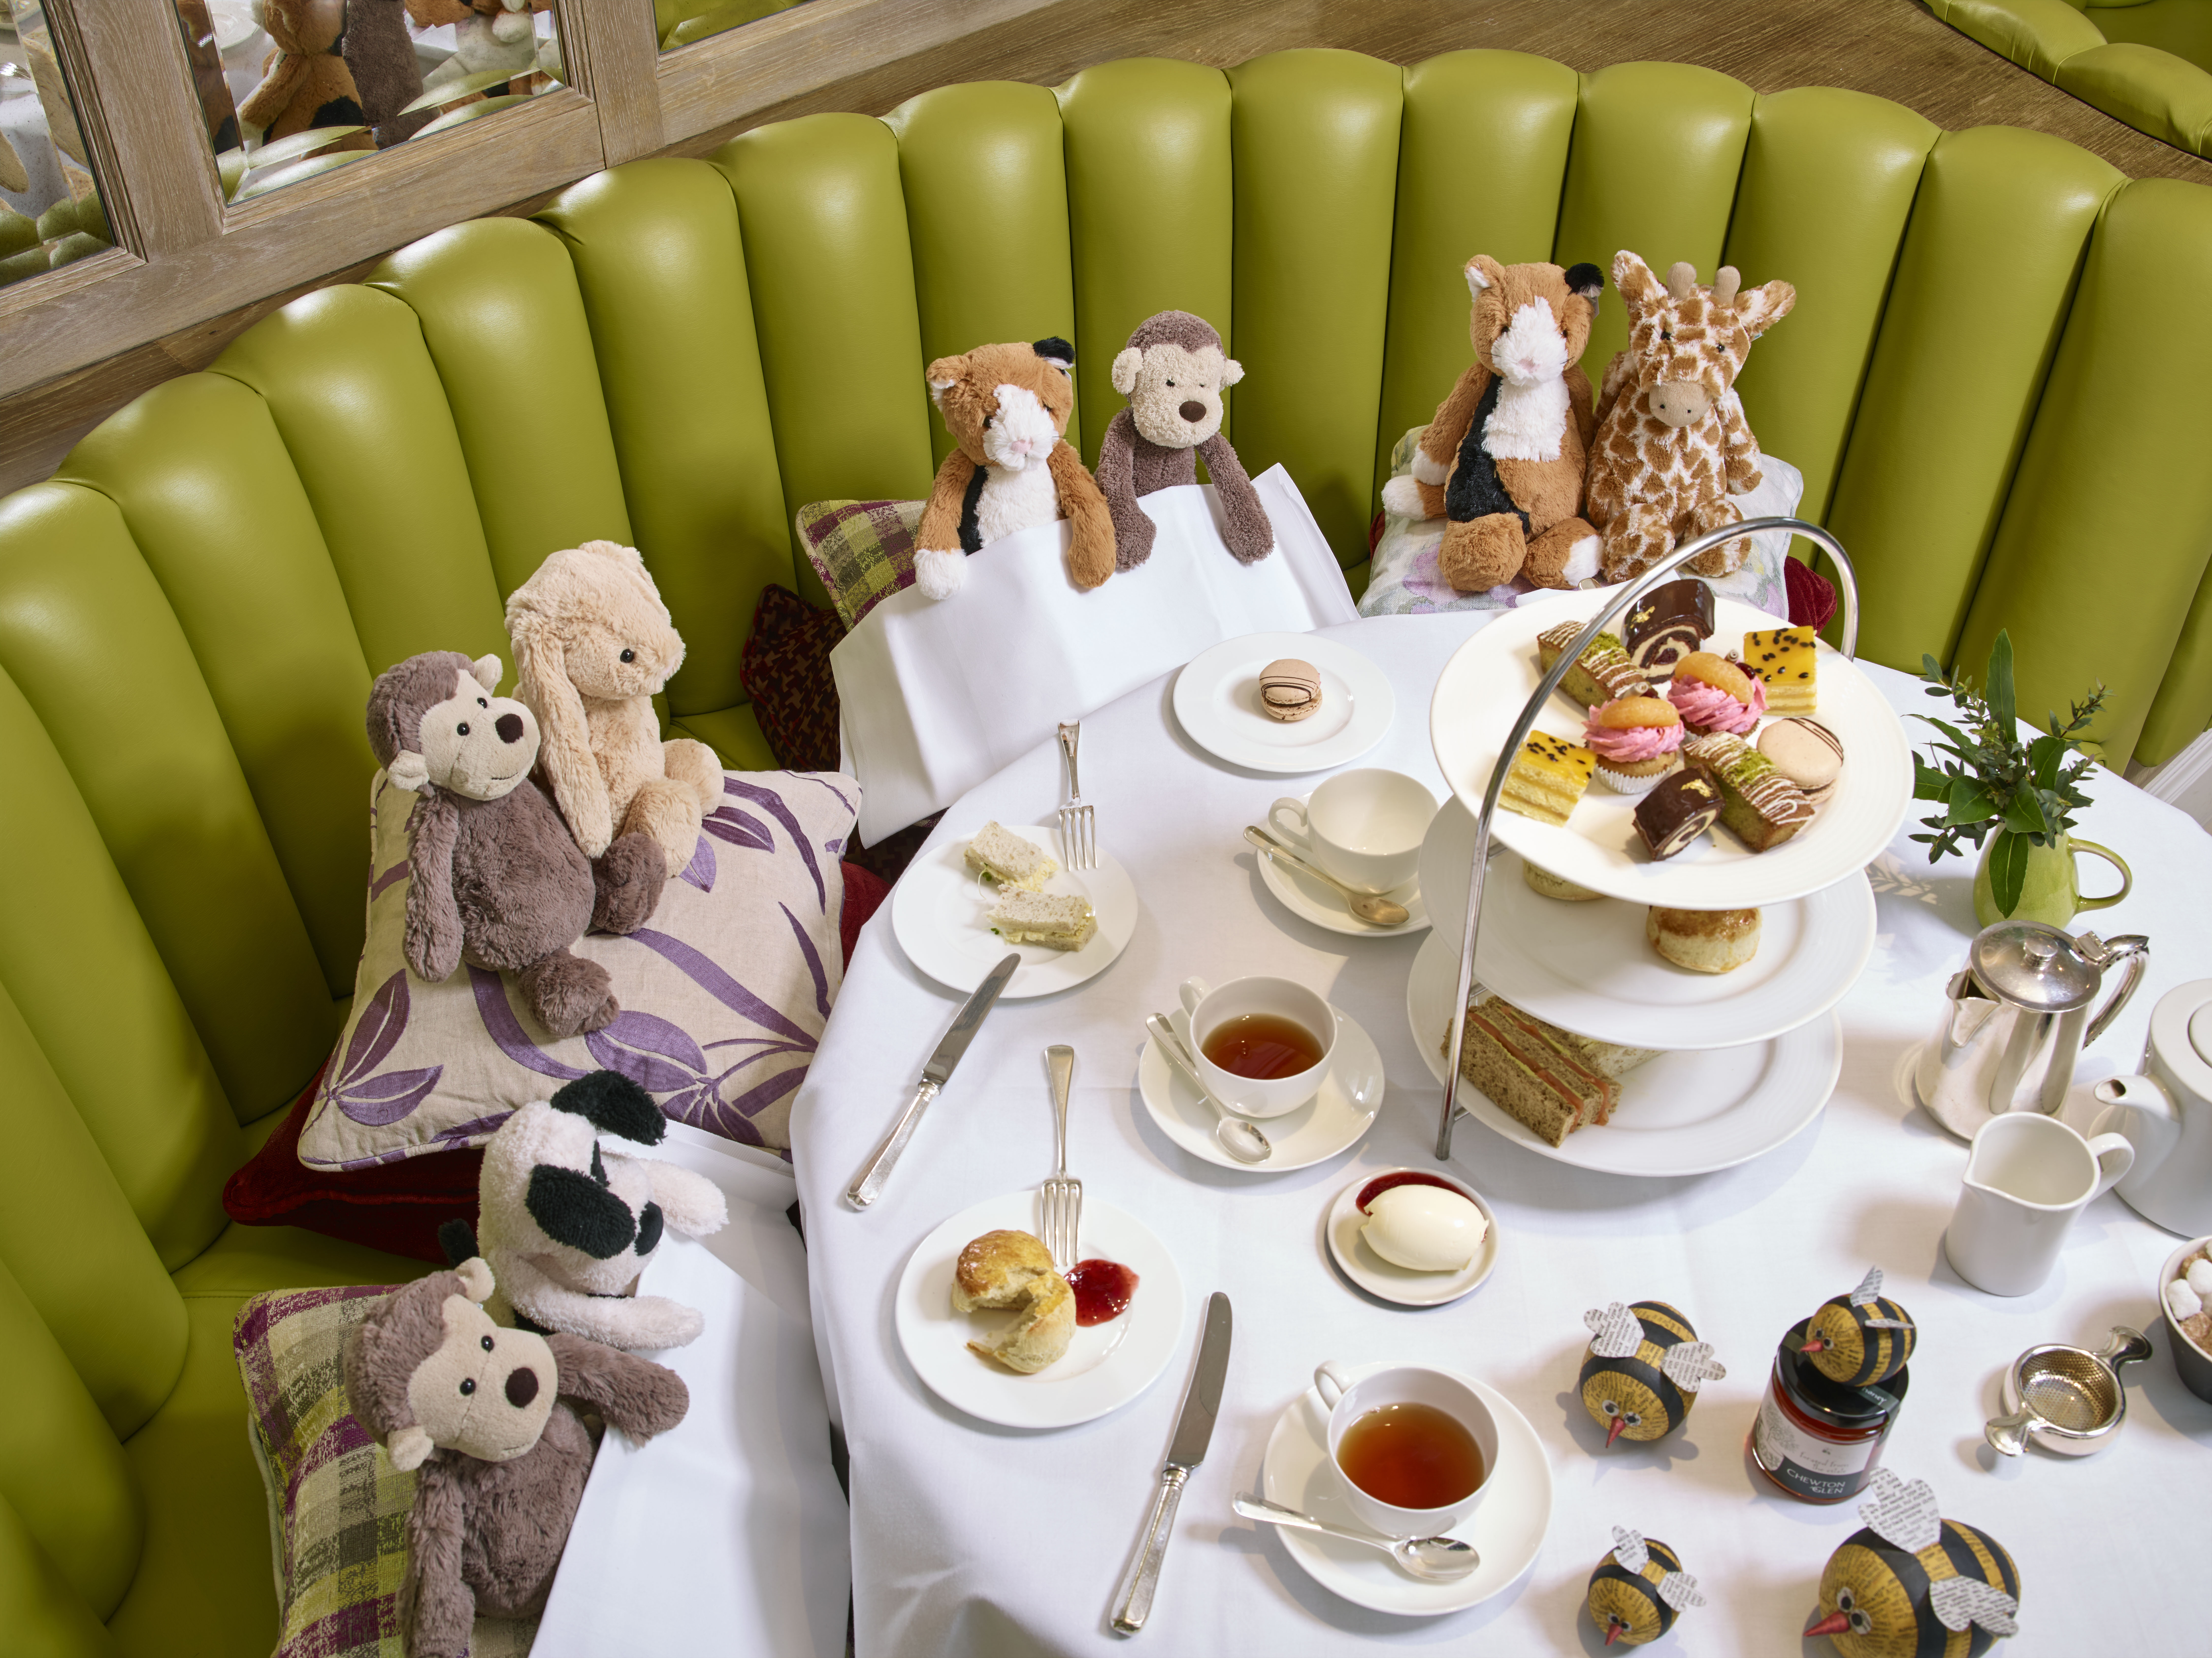 Chewton Glen Teddy Bears Picnic